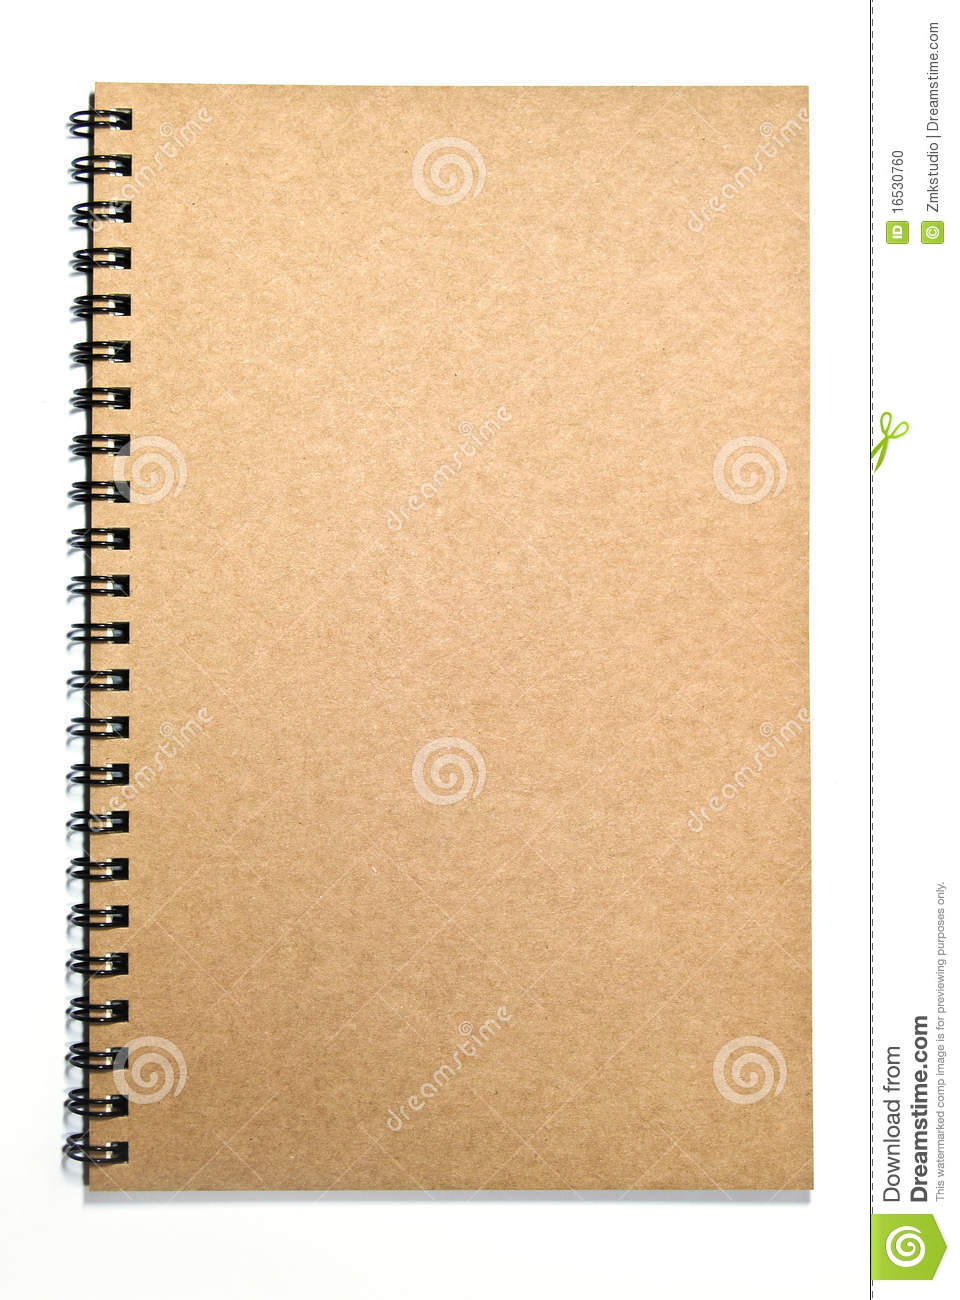 Notebook Cover Background : Grunge brown cover notebook isolated stock photo image